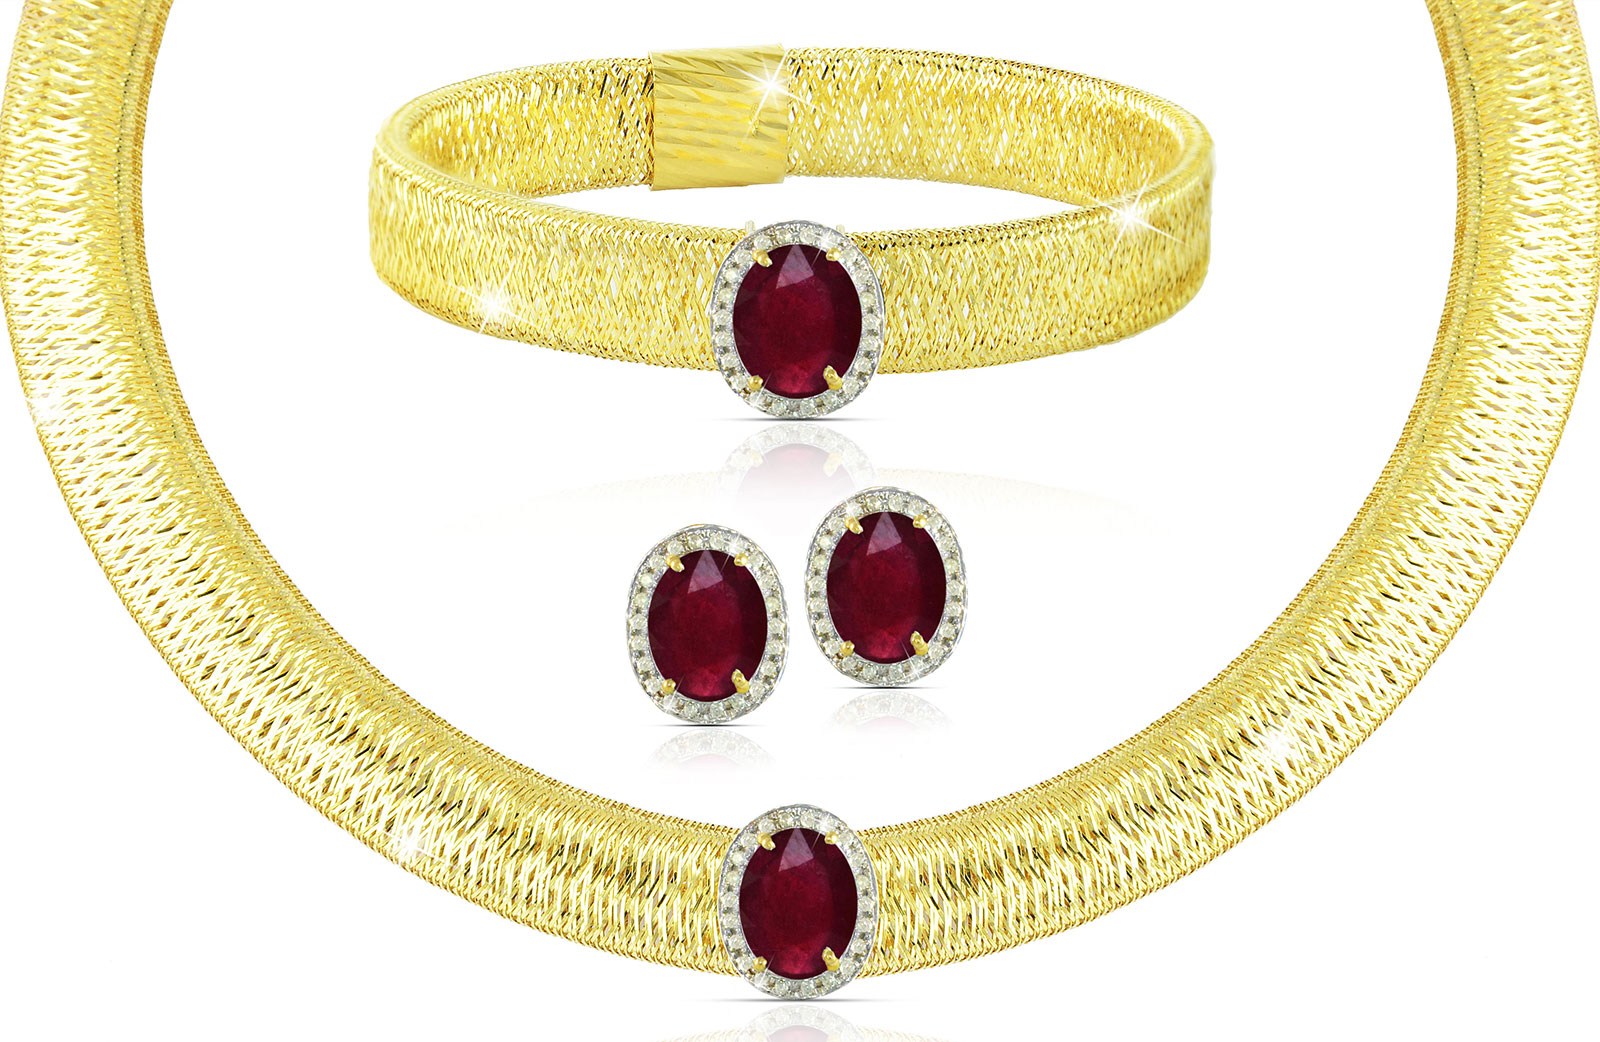 Vera Perla 18K  Gold 0.52Cts Genuine Diamonds and 10mm Genuine Rubys Necklace, Bracelet and earrings Set